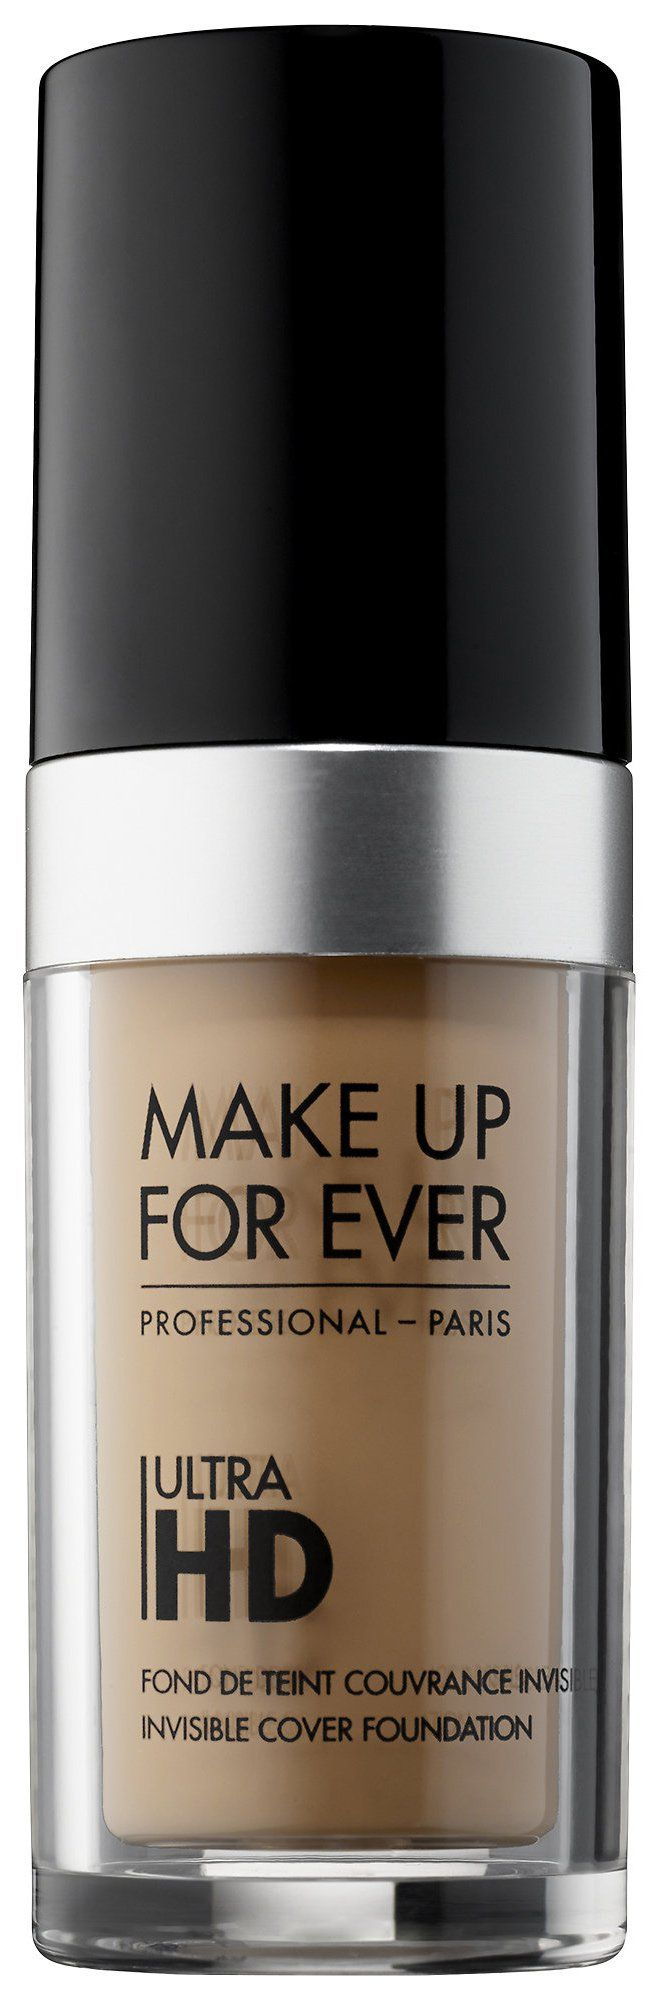 Pin for Later: Every Single Beauty Product You Need to Look Like Kylie Jenner Make Up For Ever Ultra HD Invisible Cover Foundation Make Up For Ever Ultra HD Invisible Cover Foundation ($43)